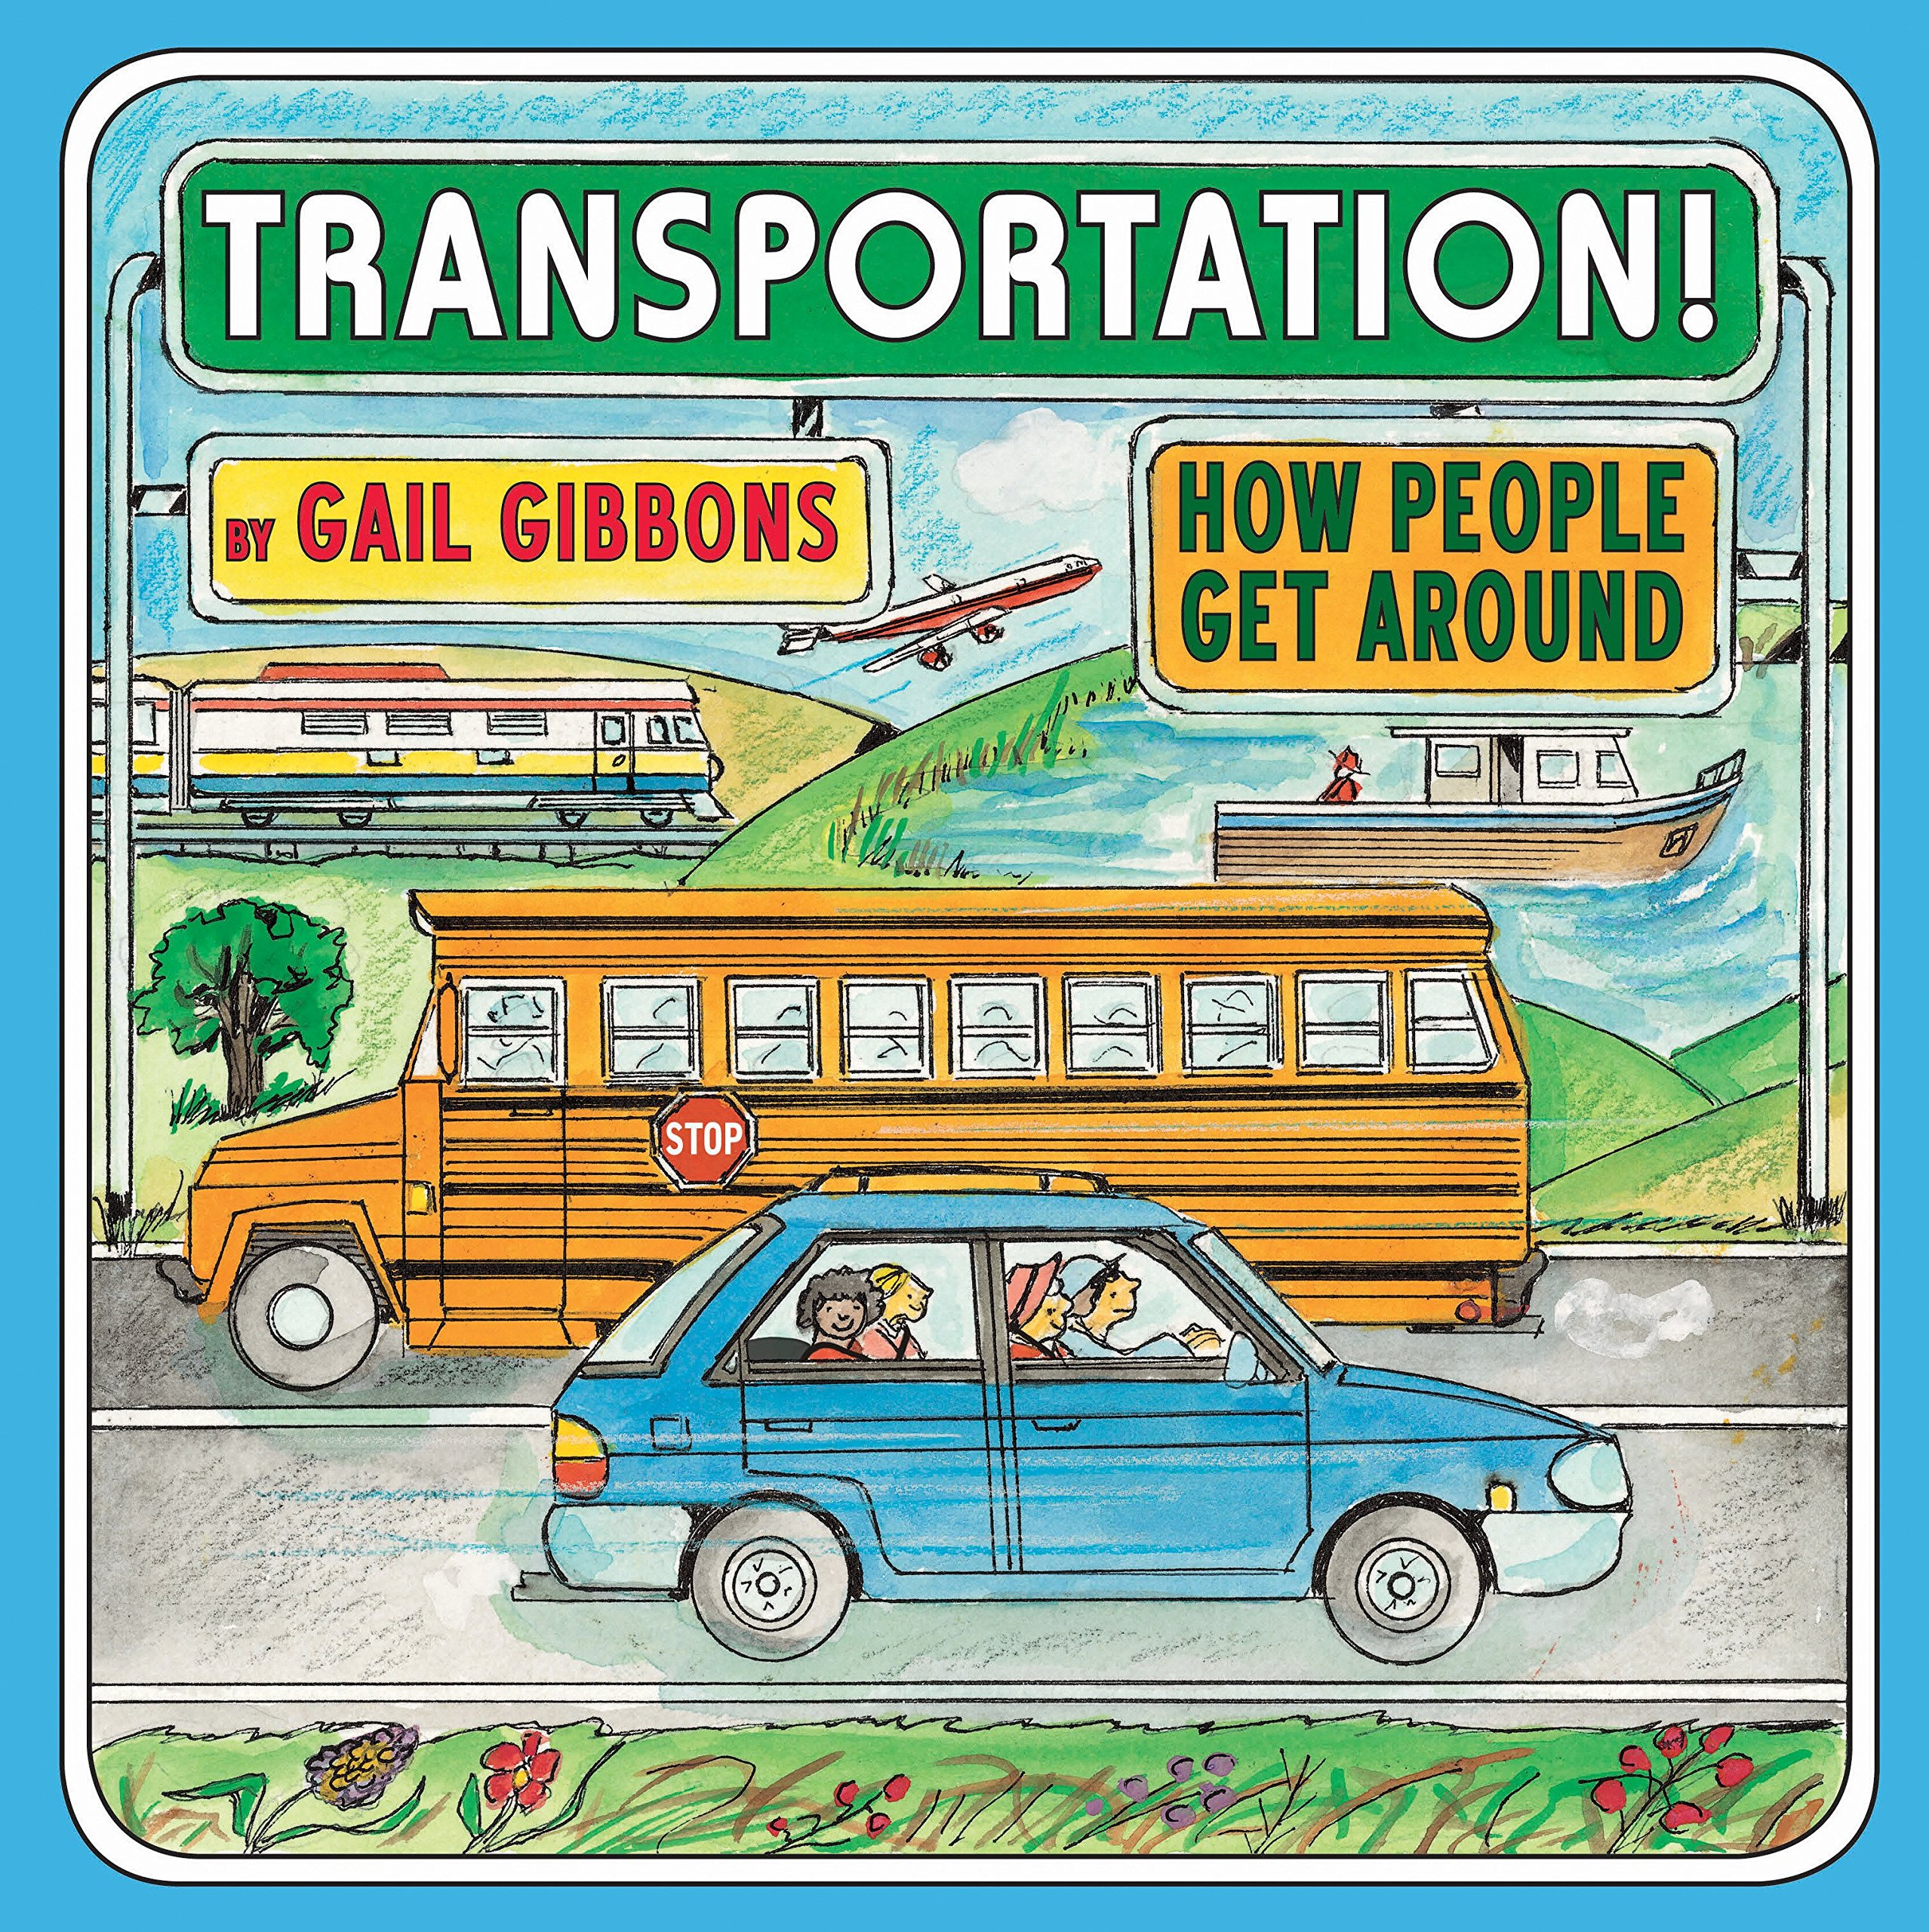 Transportation: How People Get Around